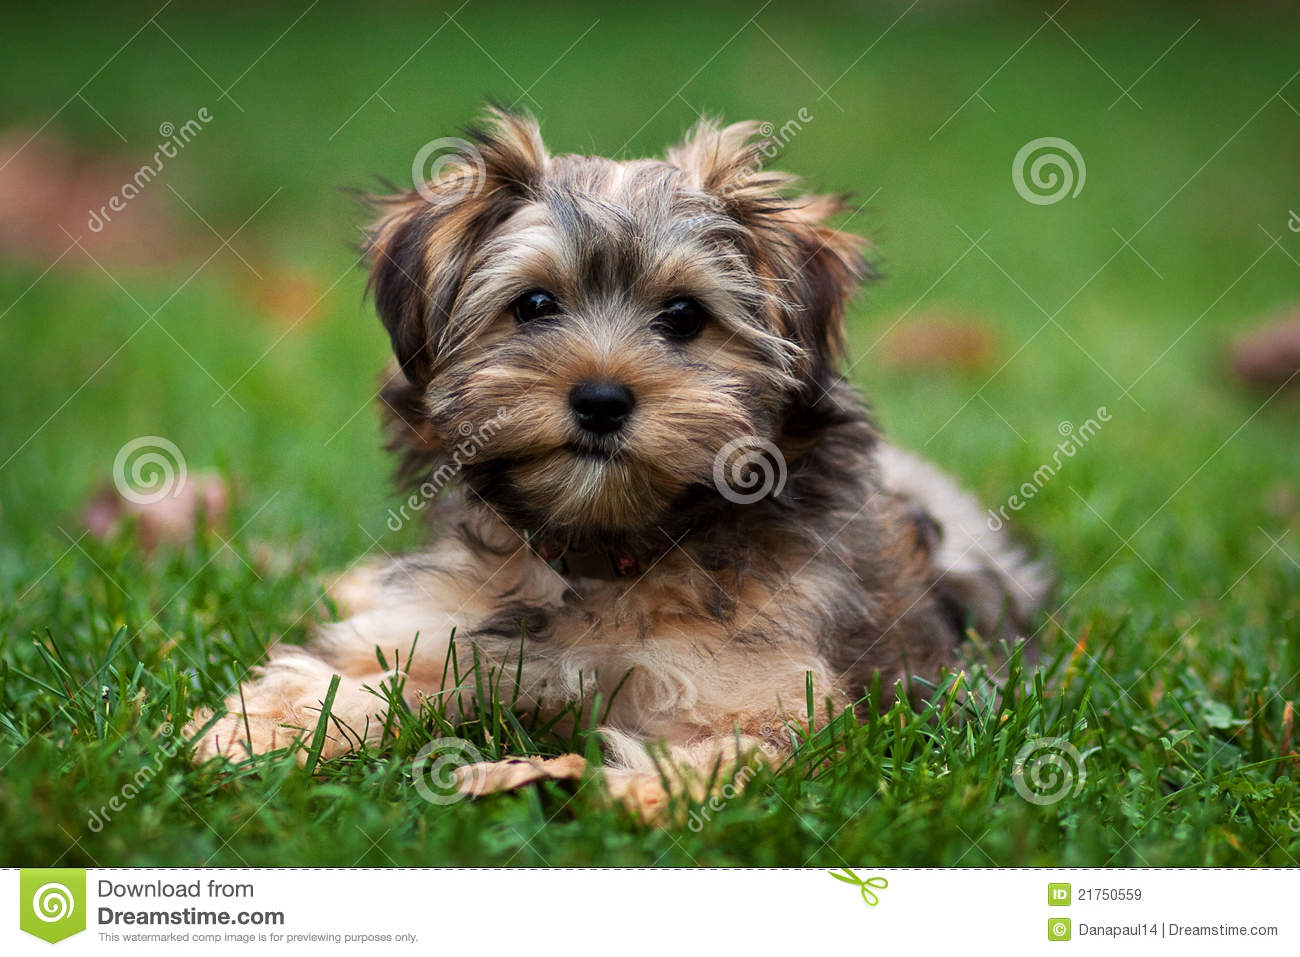 Yorkie And Shih Tzu Mixed Puppy Royalty Free Stock Images - Image